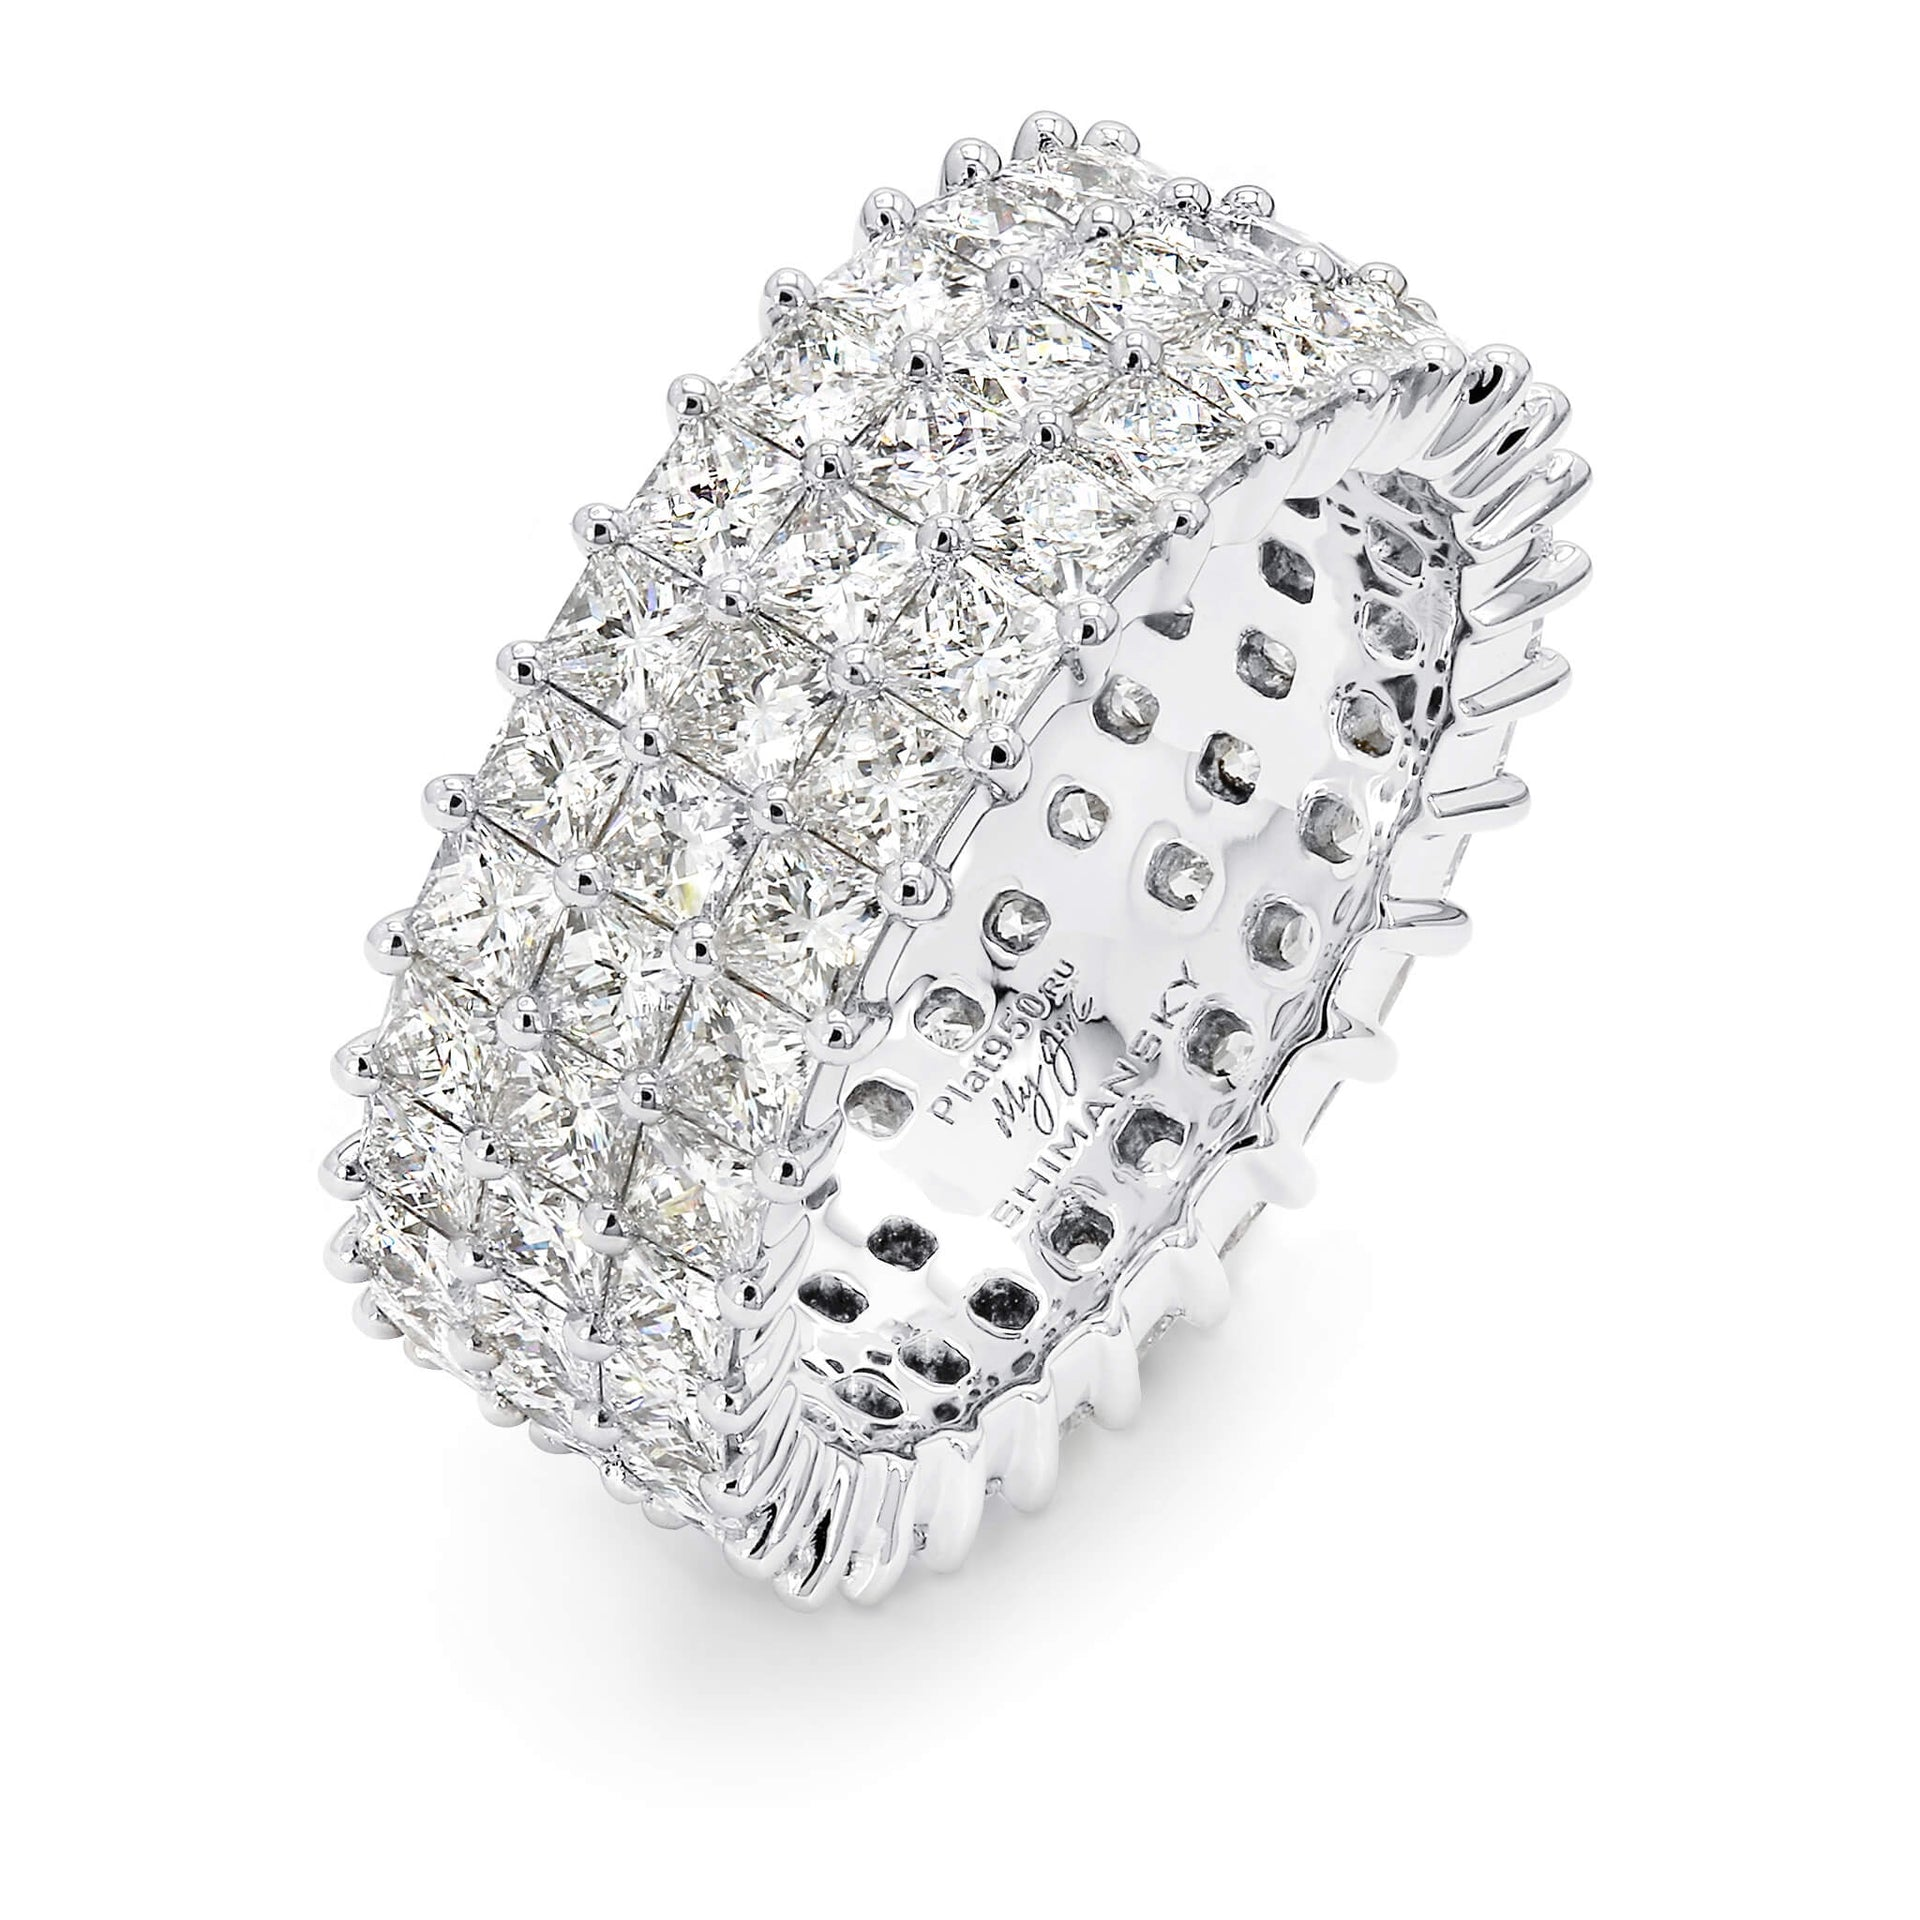 5.88 Carat My Girl Triple Row Eternity Diamond Ring in Platinum 3D View